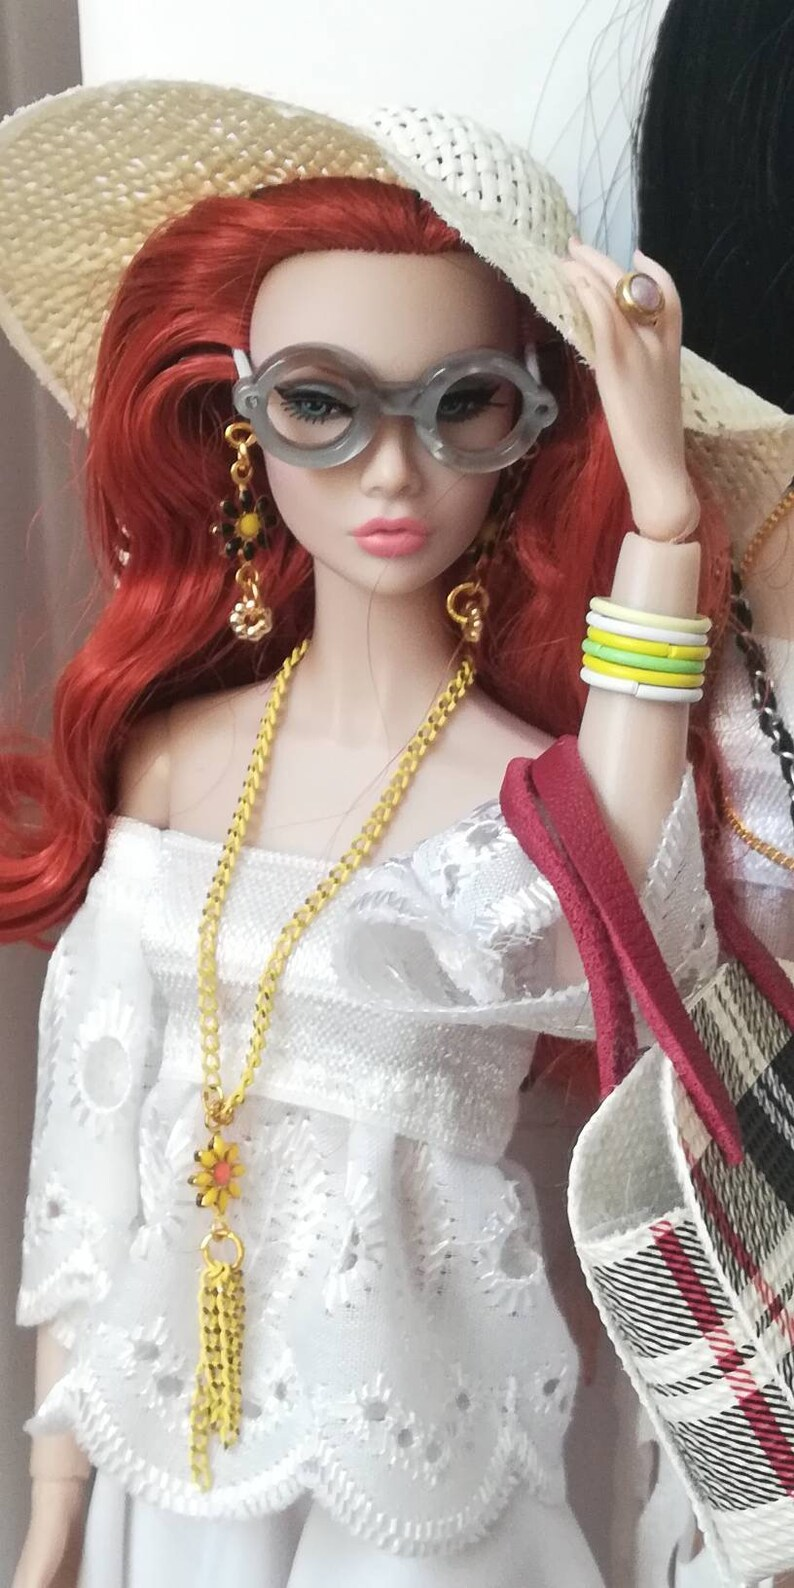 nuface integrity toys Poppy parker fashion outfit fit barbie,fr color infusion fashion royalty,momoko curve barbie vintage barbie